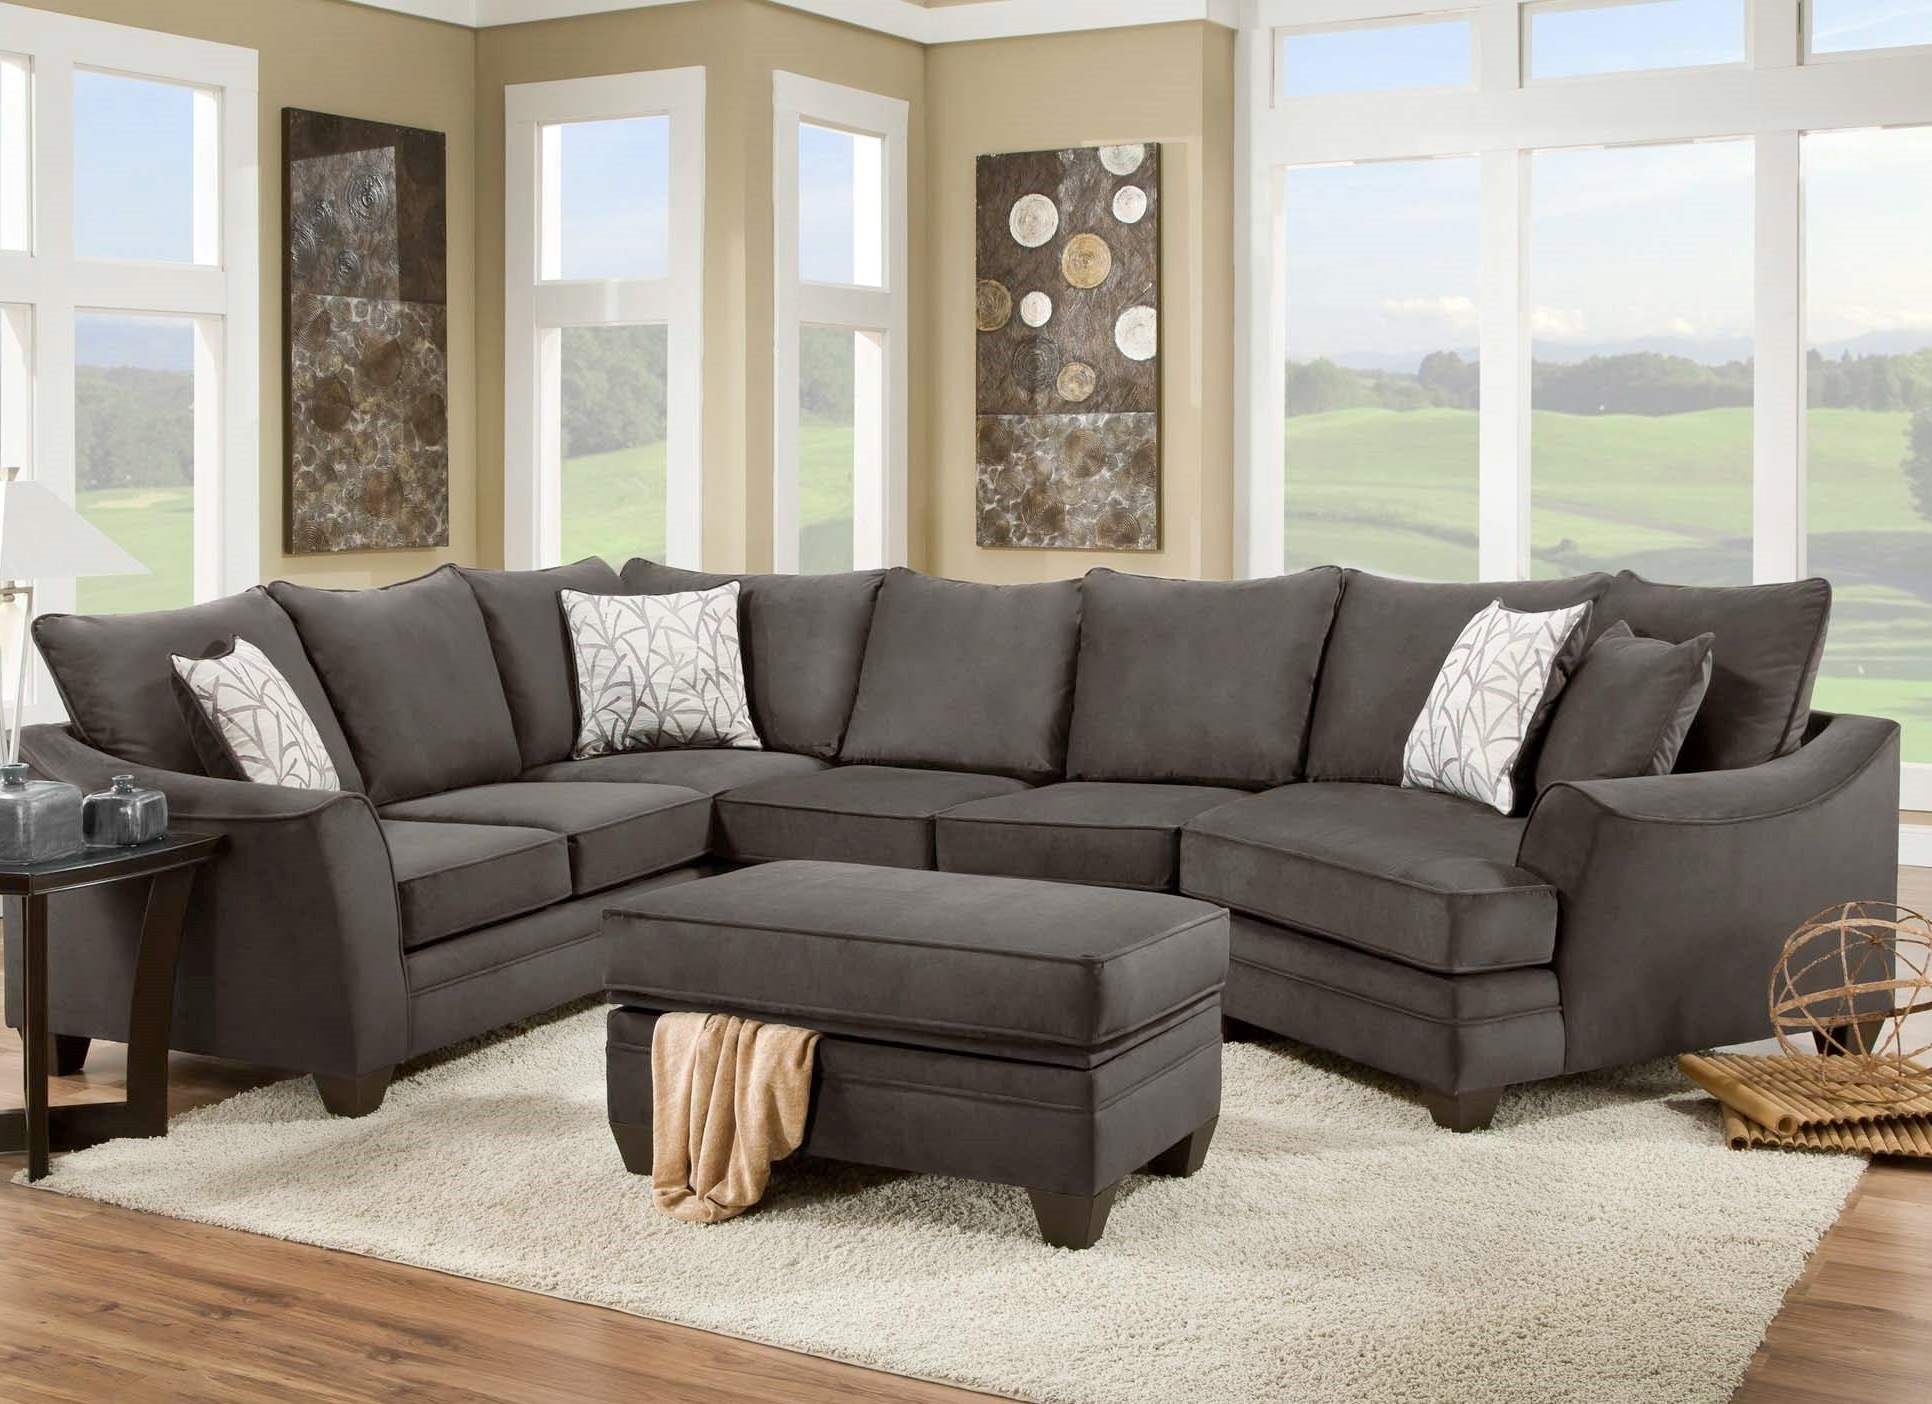 American Furniture 3810 Sectional Sofa That Seats 5 With Left Side Intended For Trendy Jackson Ms Sectional Sofas (View 14 of 20)